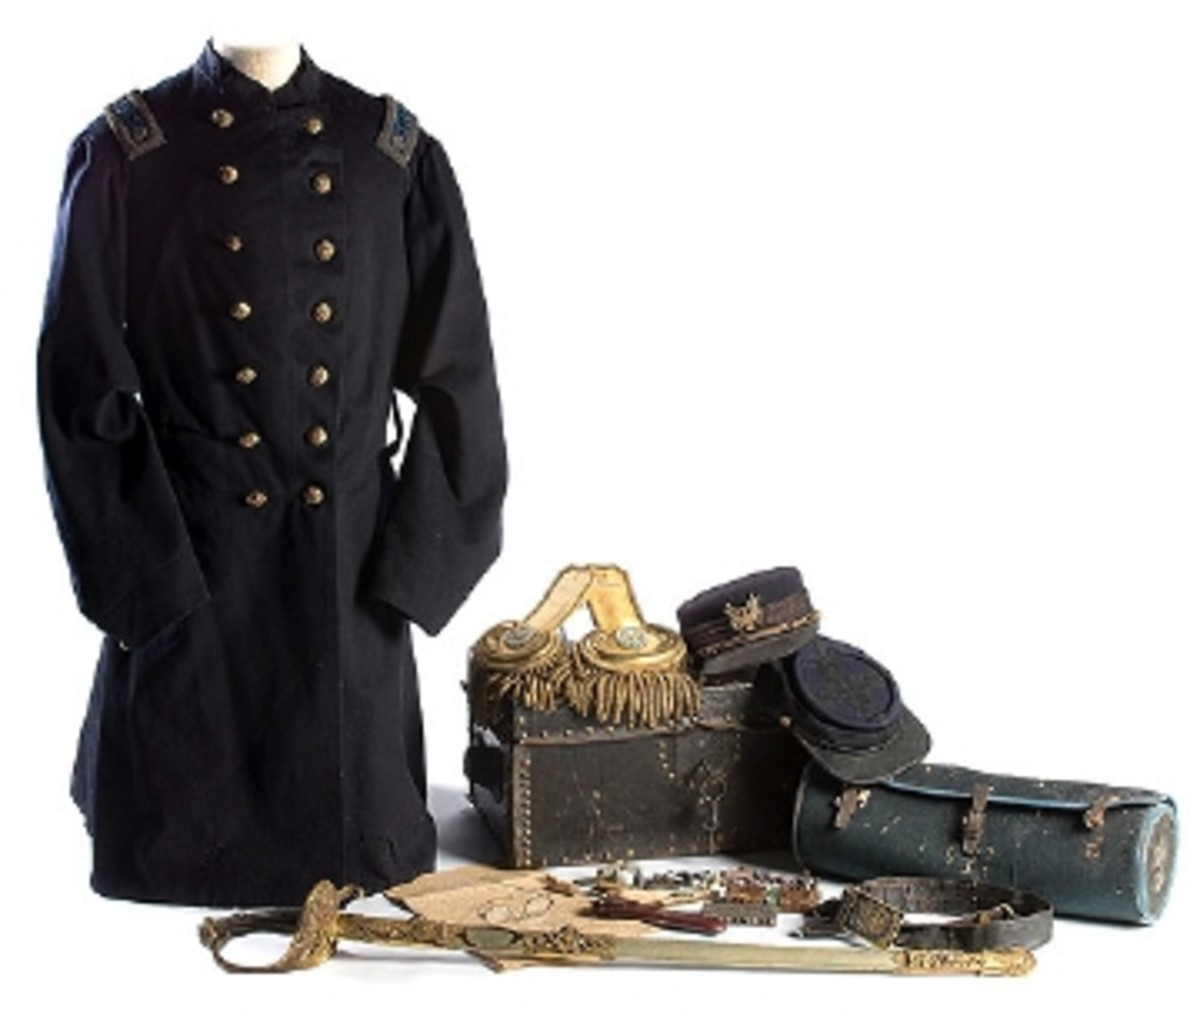 CIVIL WAR UNIFORM AND SWORD OF LT. COLONEL JOSEPH W. CORNING GARNERS $16,675